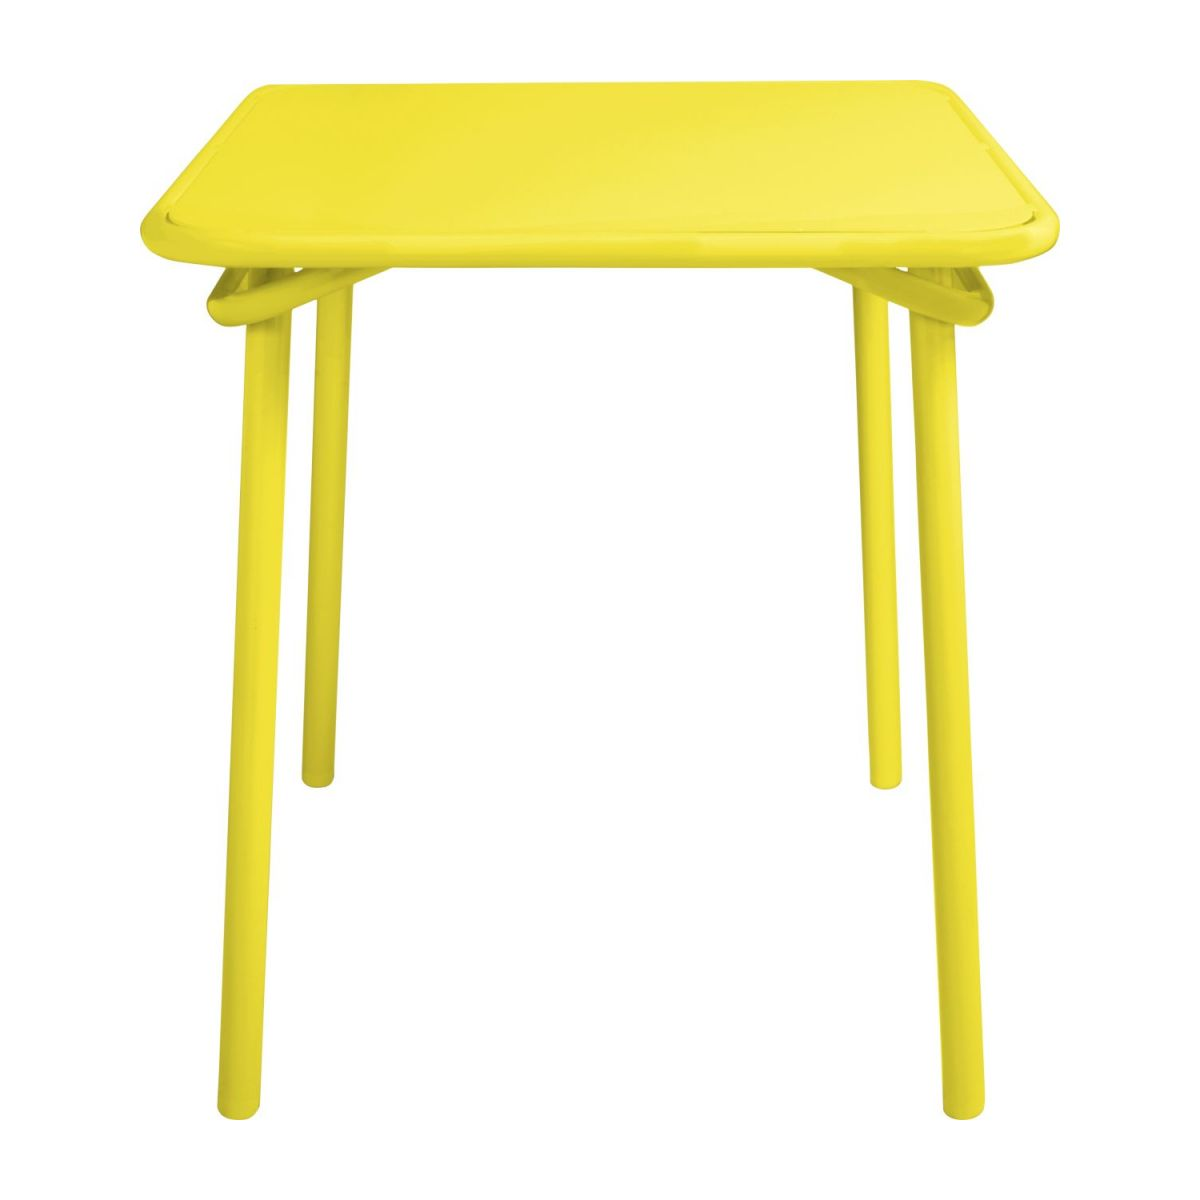 Yellow garden table n°3